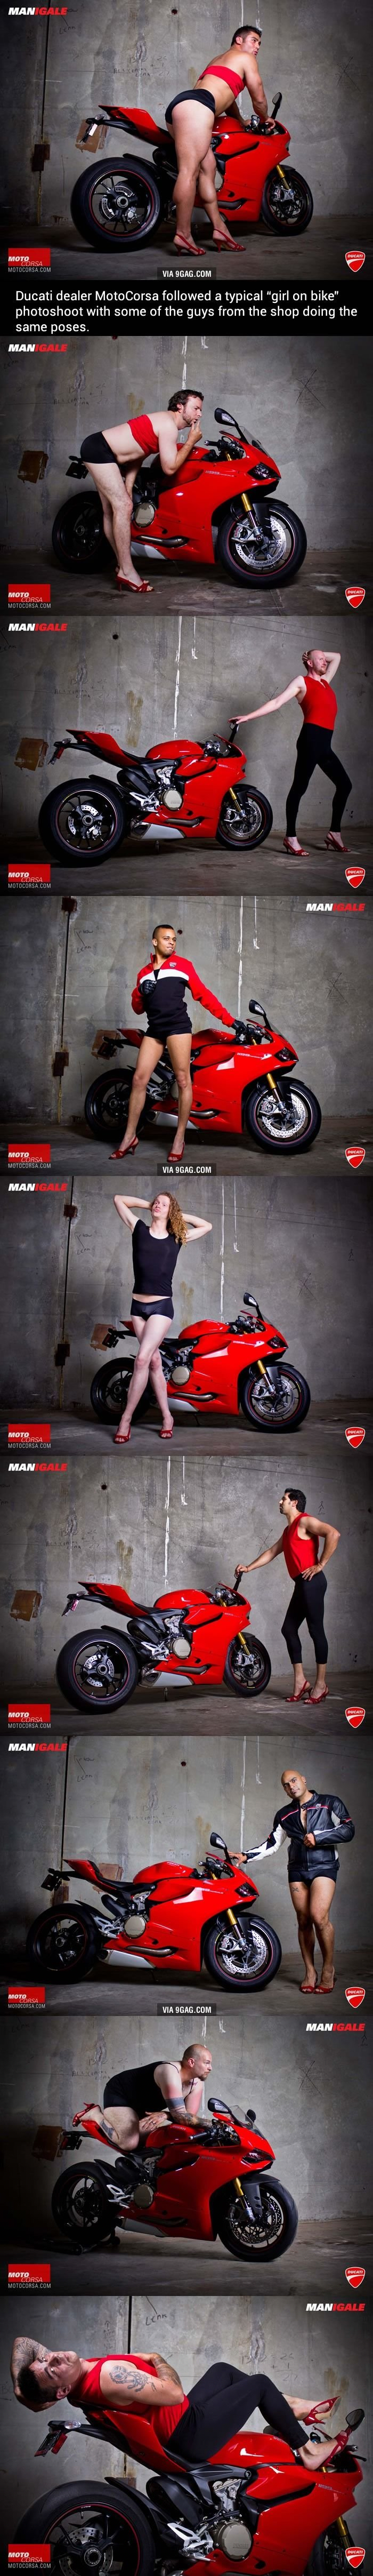 """No Double Standards Here. Personally, I think some of these fine gents should feel very sexy.. VIA """"MIAM Ducati dealer Motorolla followed a typical """"girl on bik"""